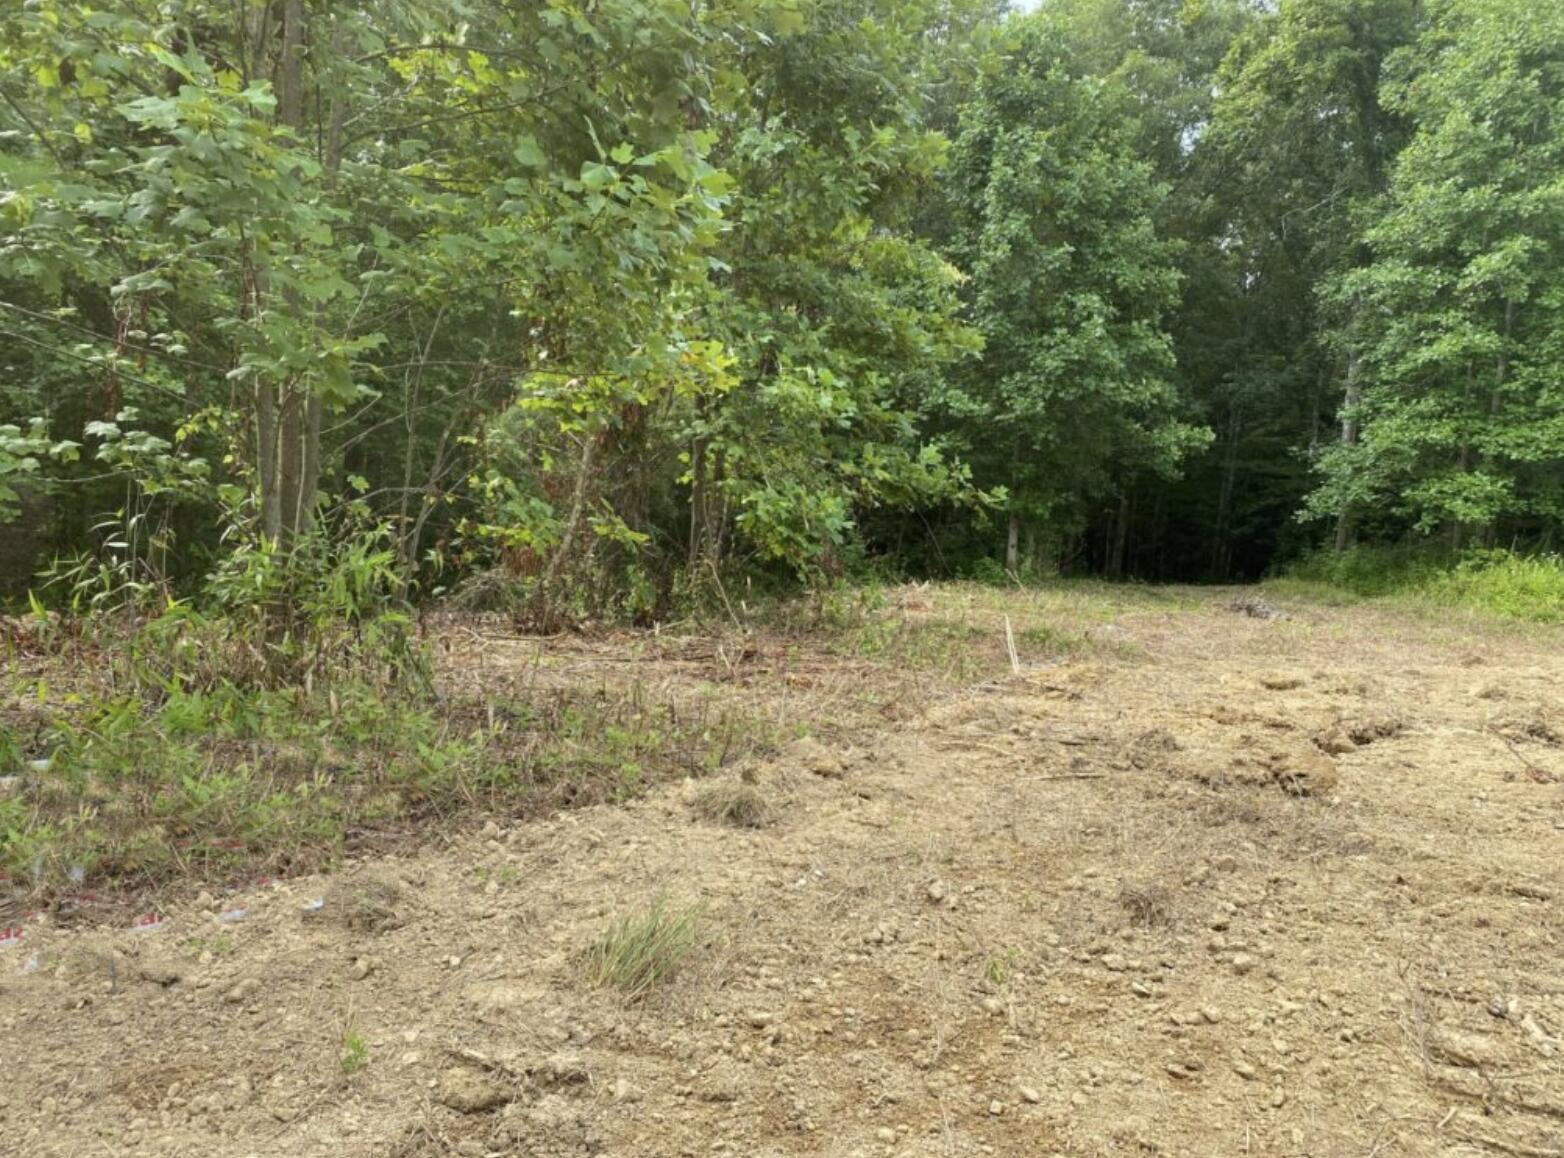 6 Moonbow Falls, Parkers Lake, KY 42634